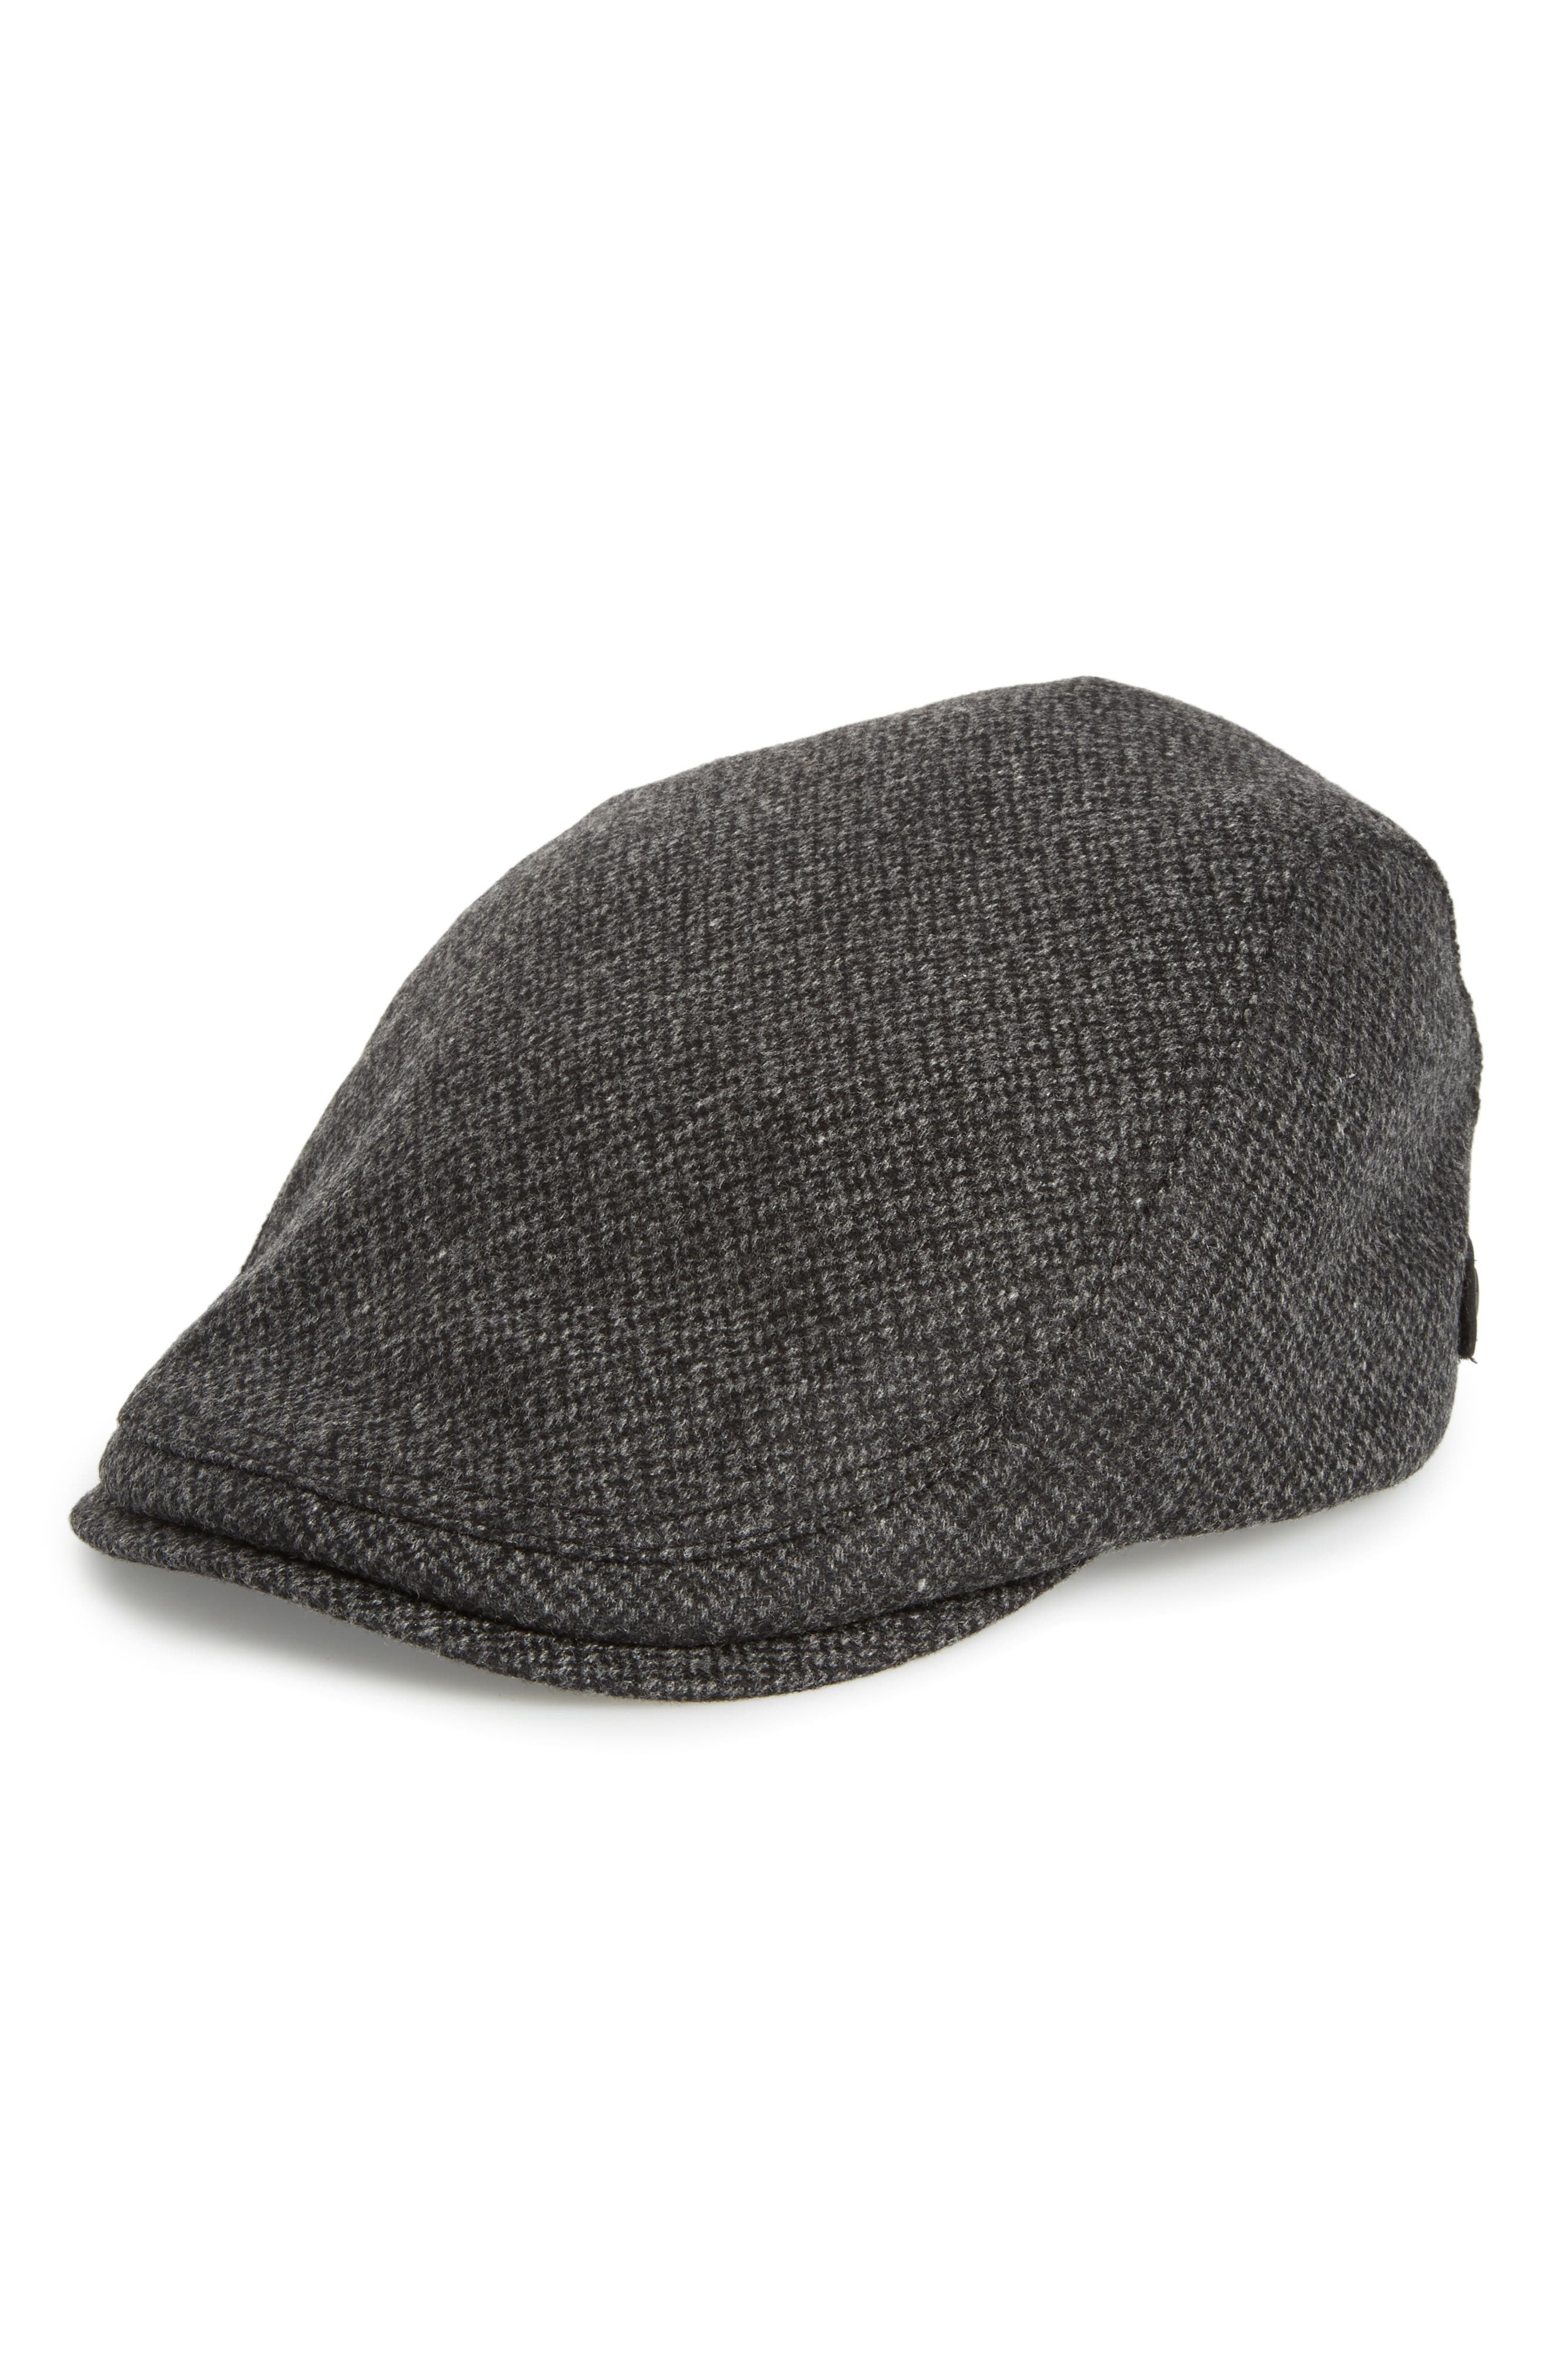 Main Image - Ted Baker Thompson Wool Blend Flat Driving Cap